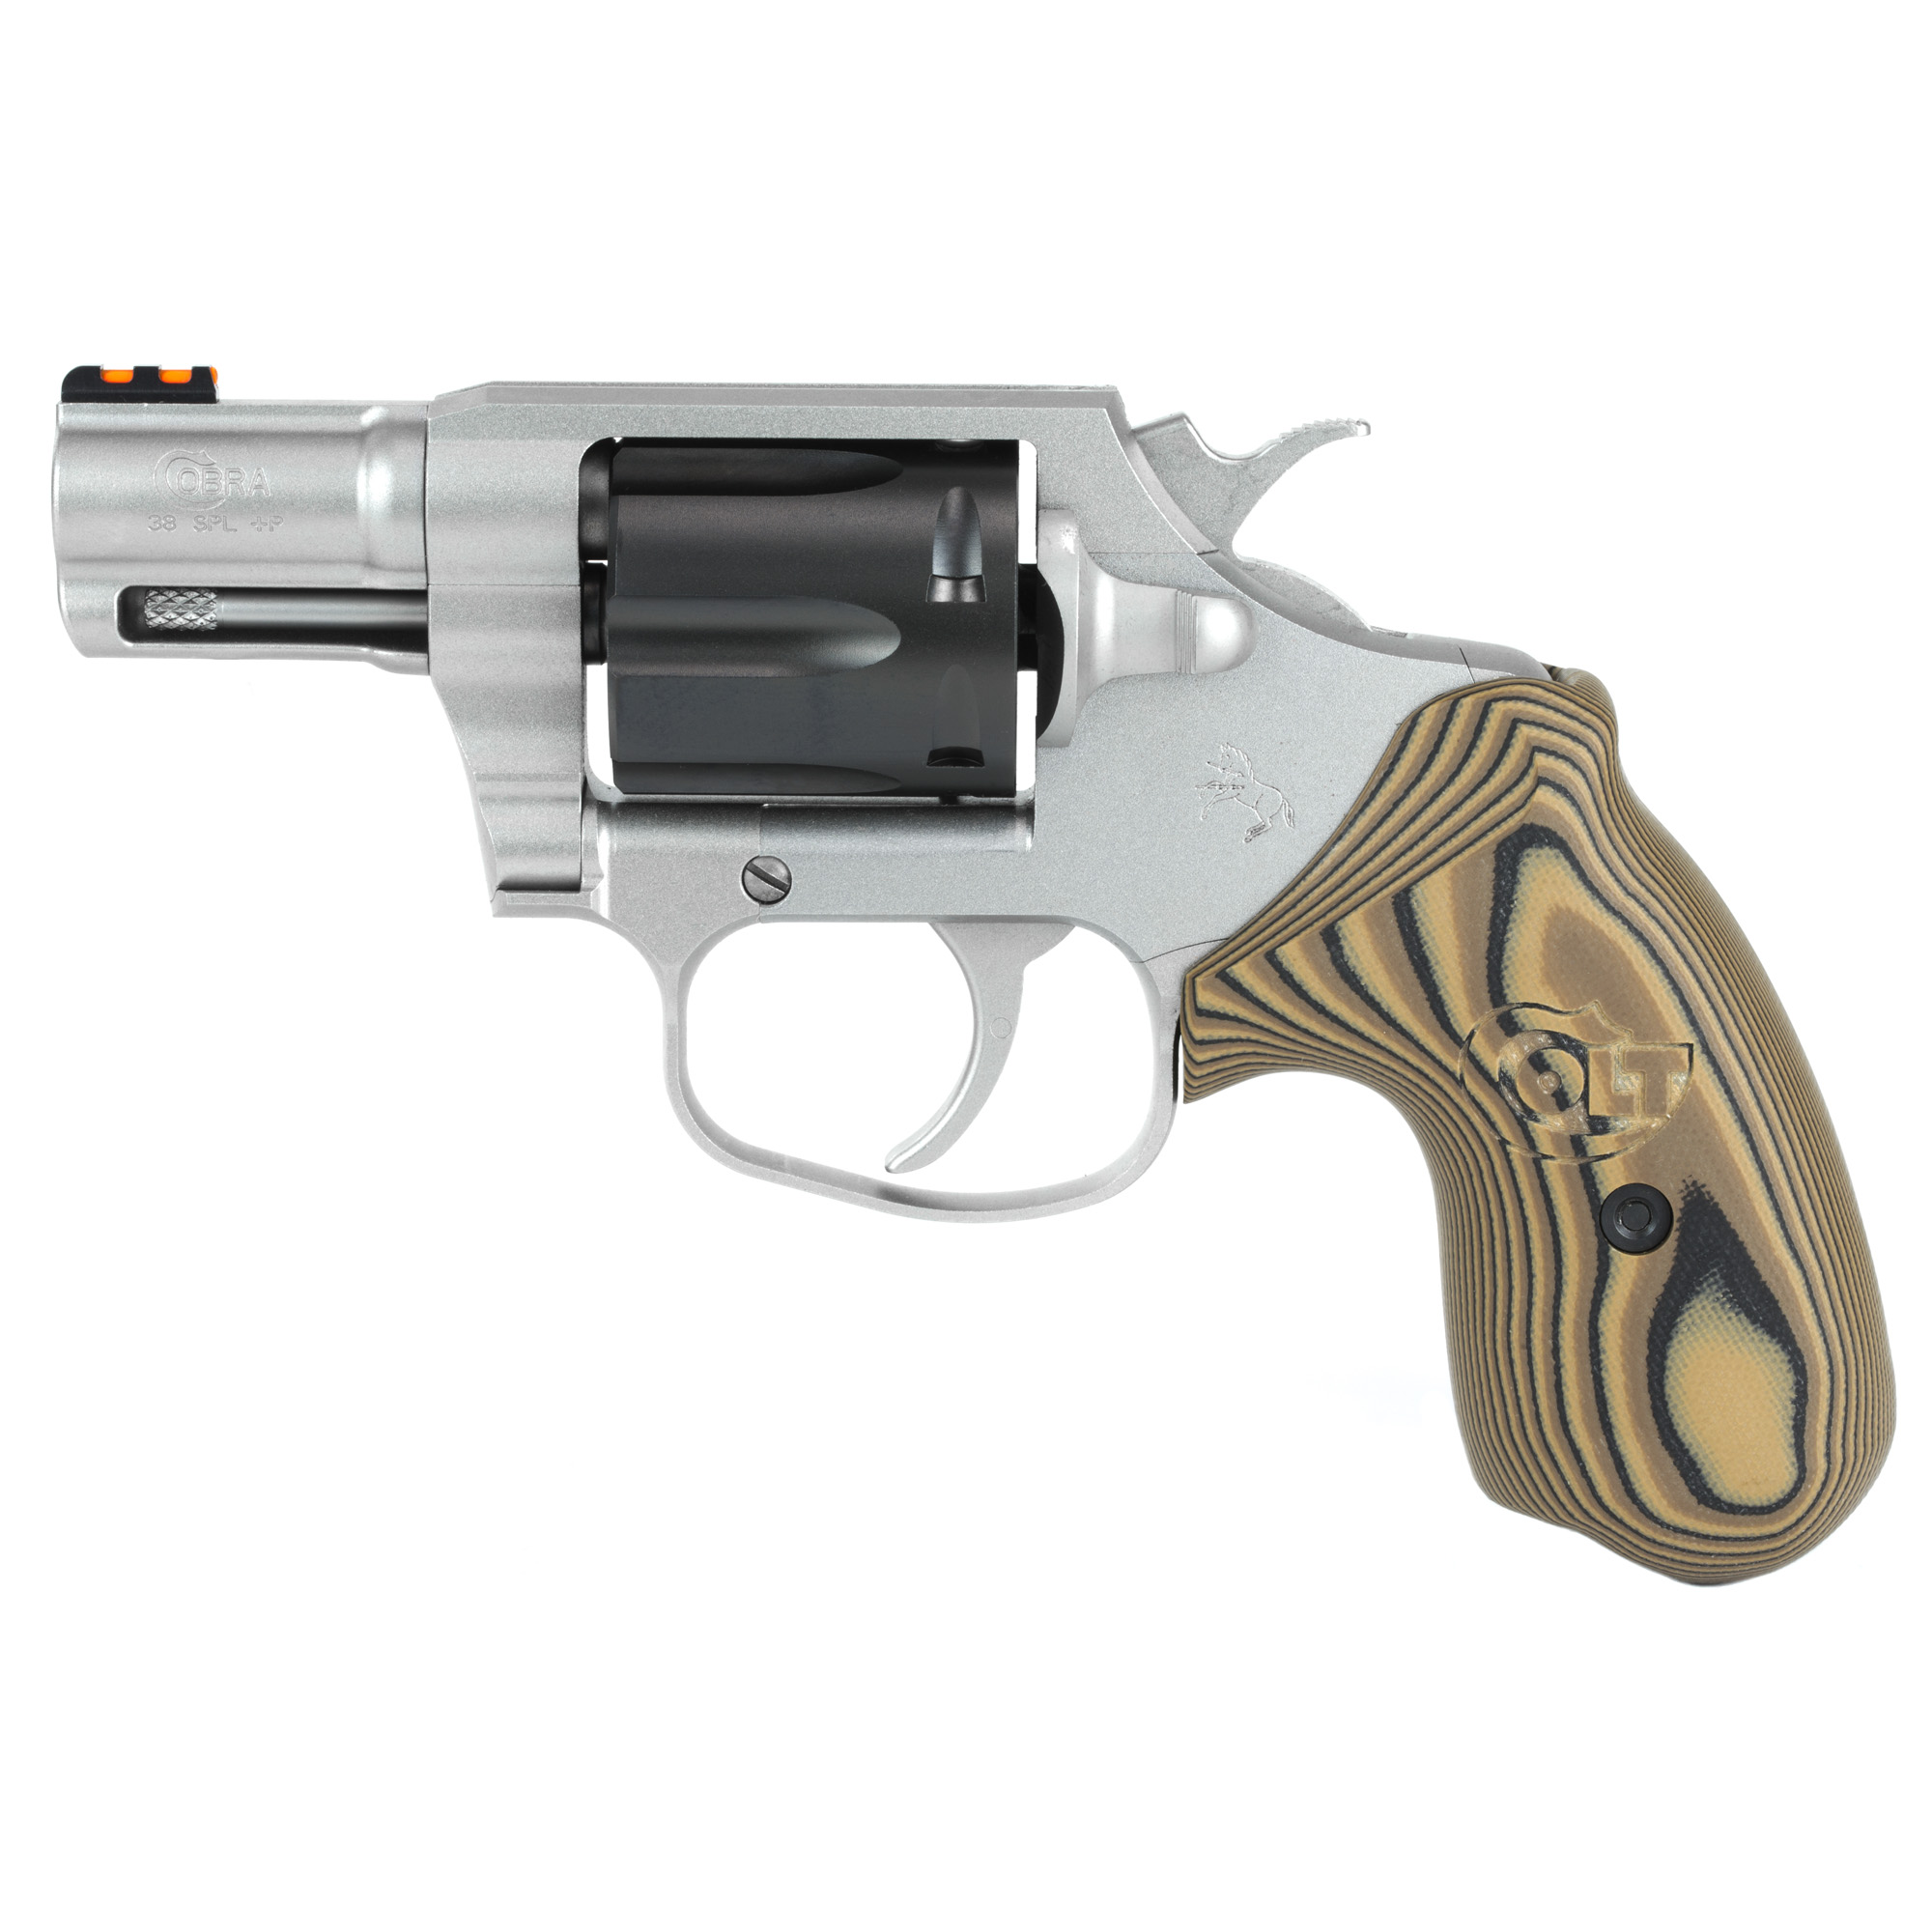 """The Colt Cobra(R) marks Colt's triumphant return to the world of double-action revolvers. Its small frame and 2"""" barrel make it ideal for concealed carry. The Cobra(R) is chambered in .38 Special and is +P capable. This special Two Tone version features a Black DLC cylinder and Hyena Brown G10 grips. It's easy and enjoyable to shoot"""" easy to carry"""" and draws from the fine lineage that make Colt revolvers special."""